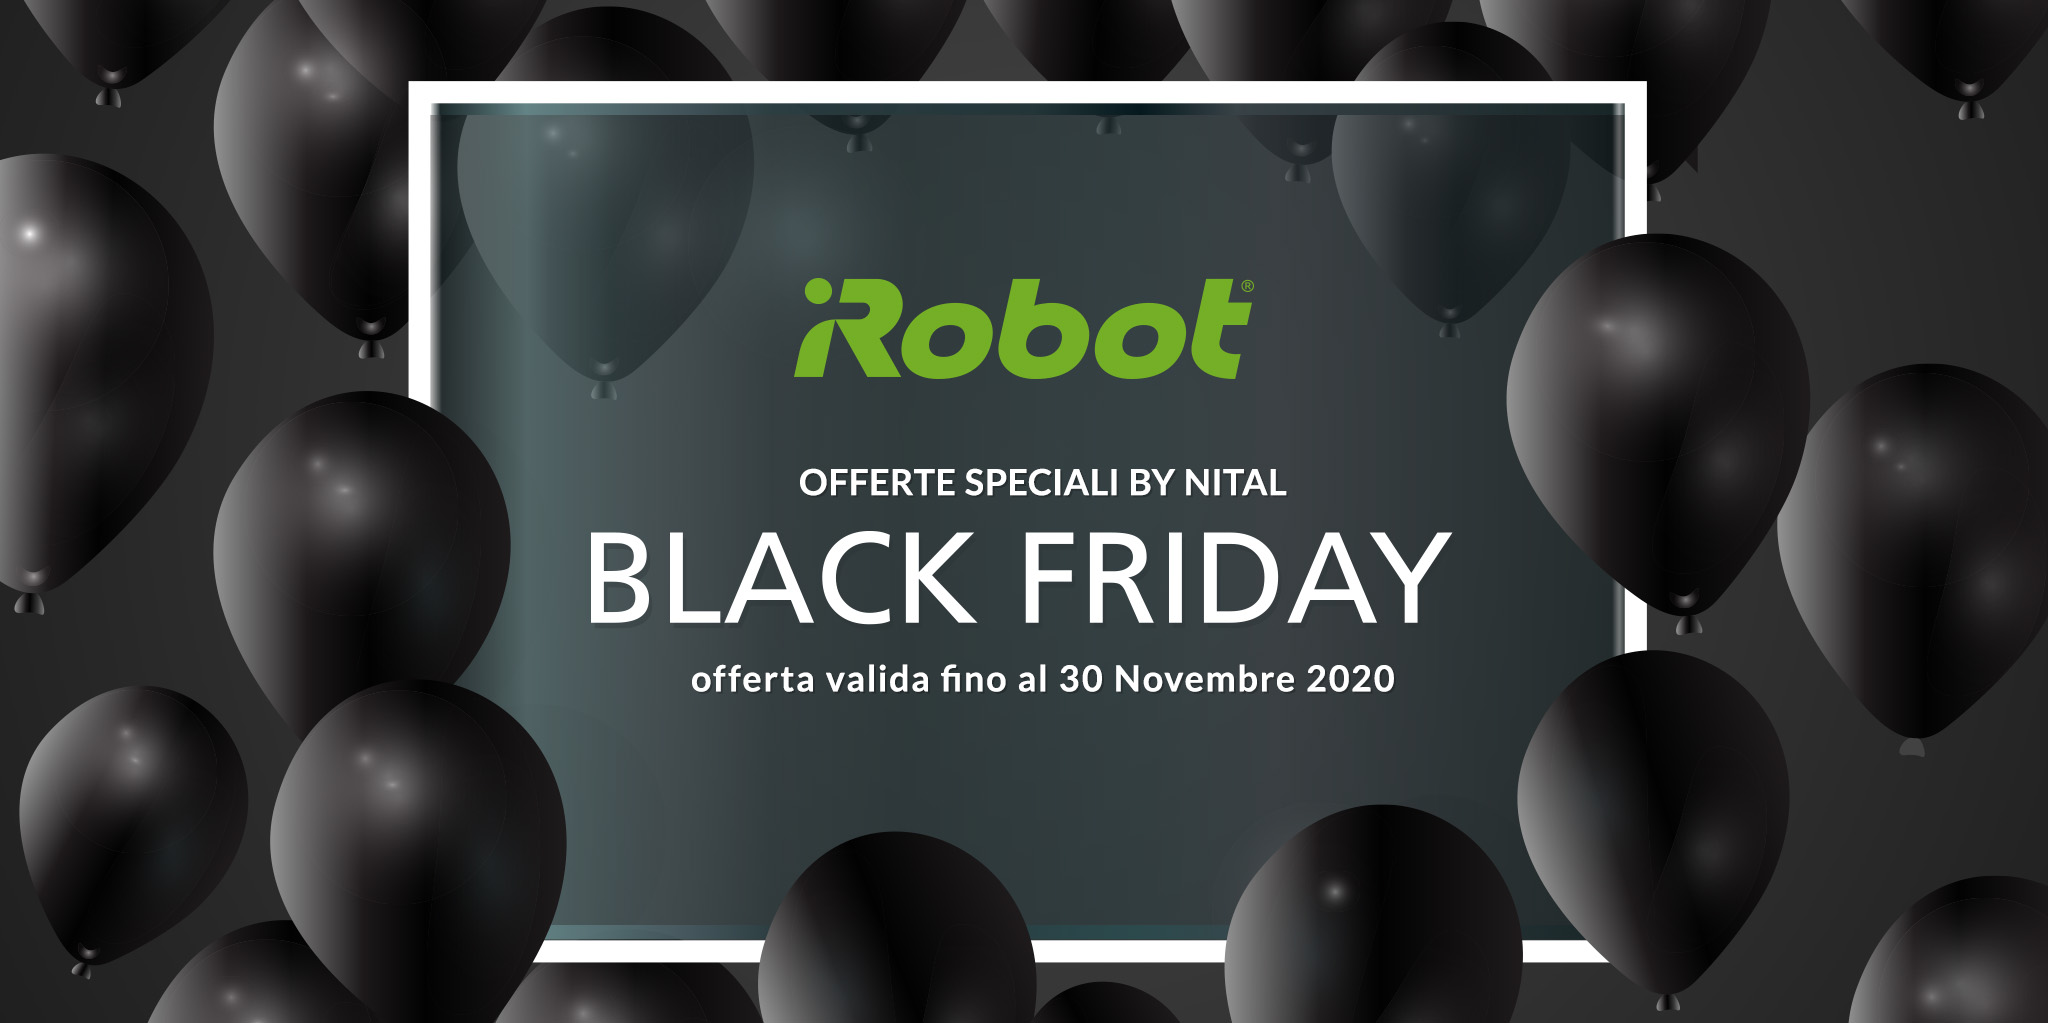 iRobot Black Friday